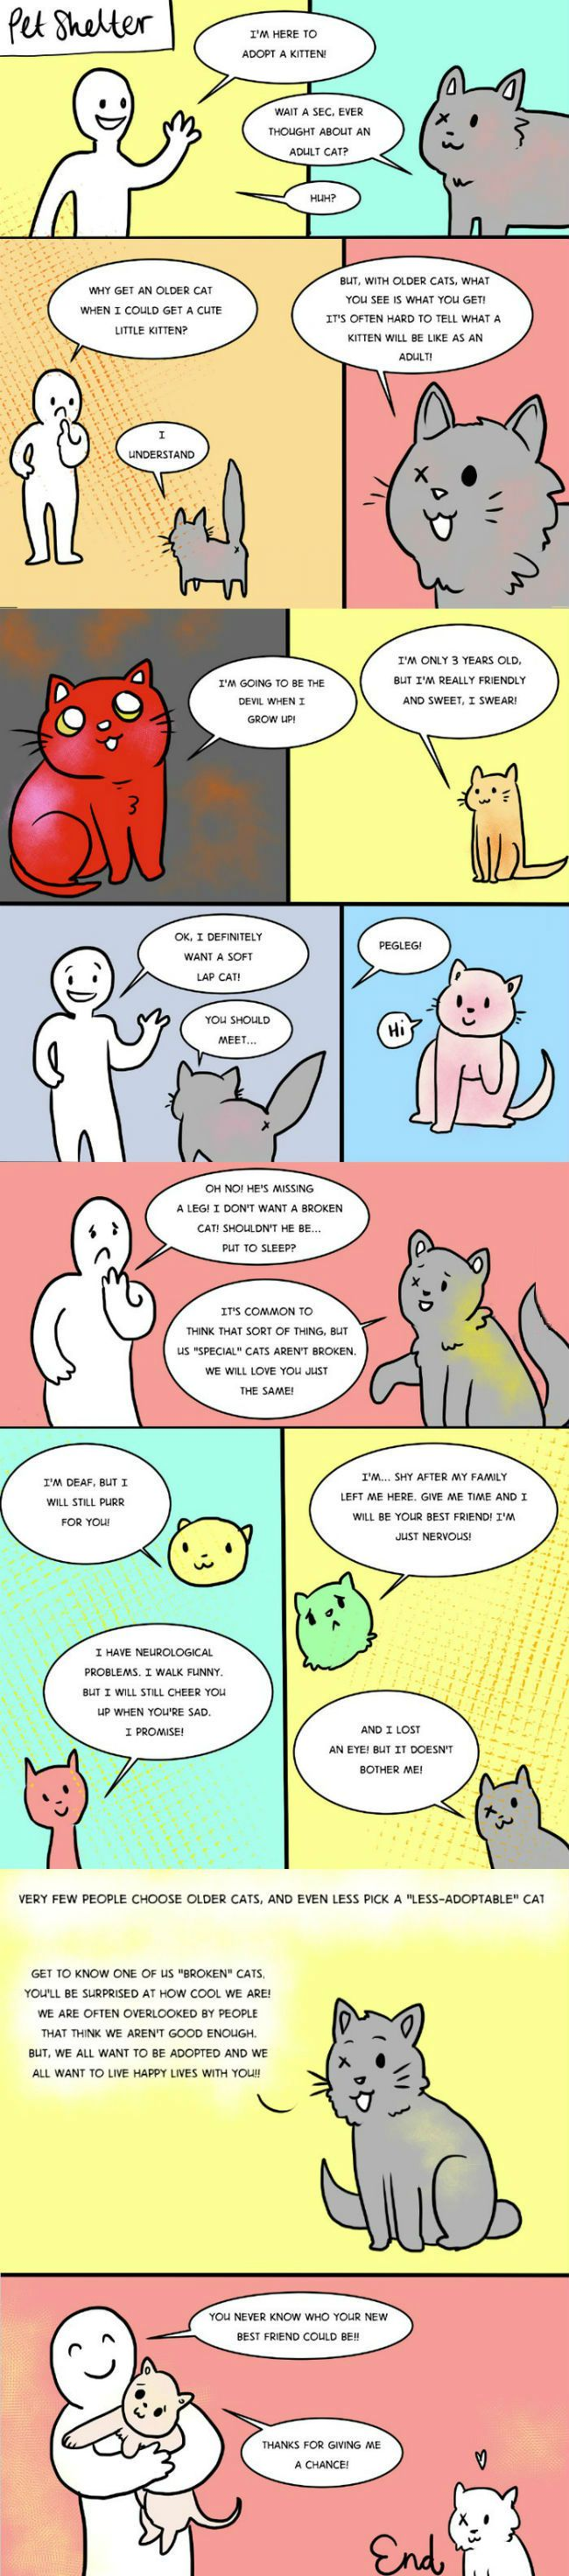 Thinking about adopting a cat?